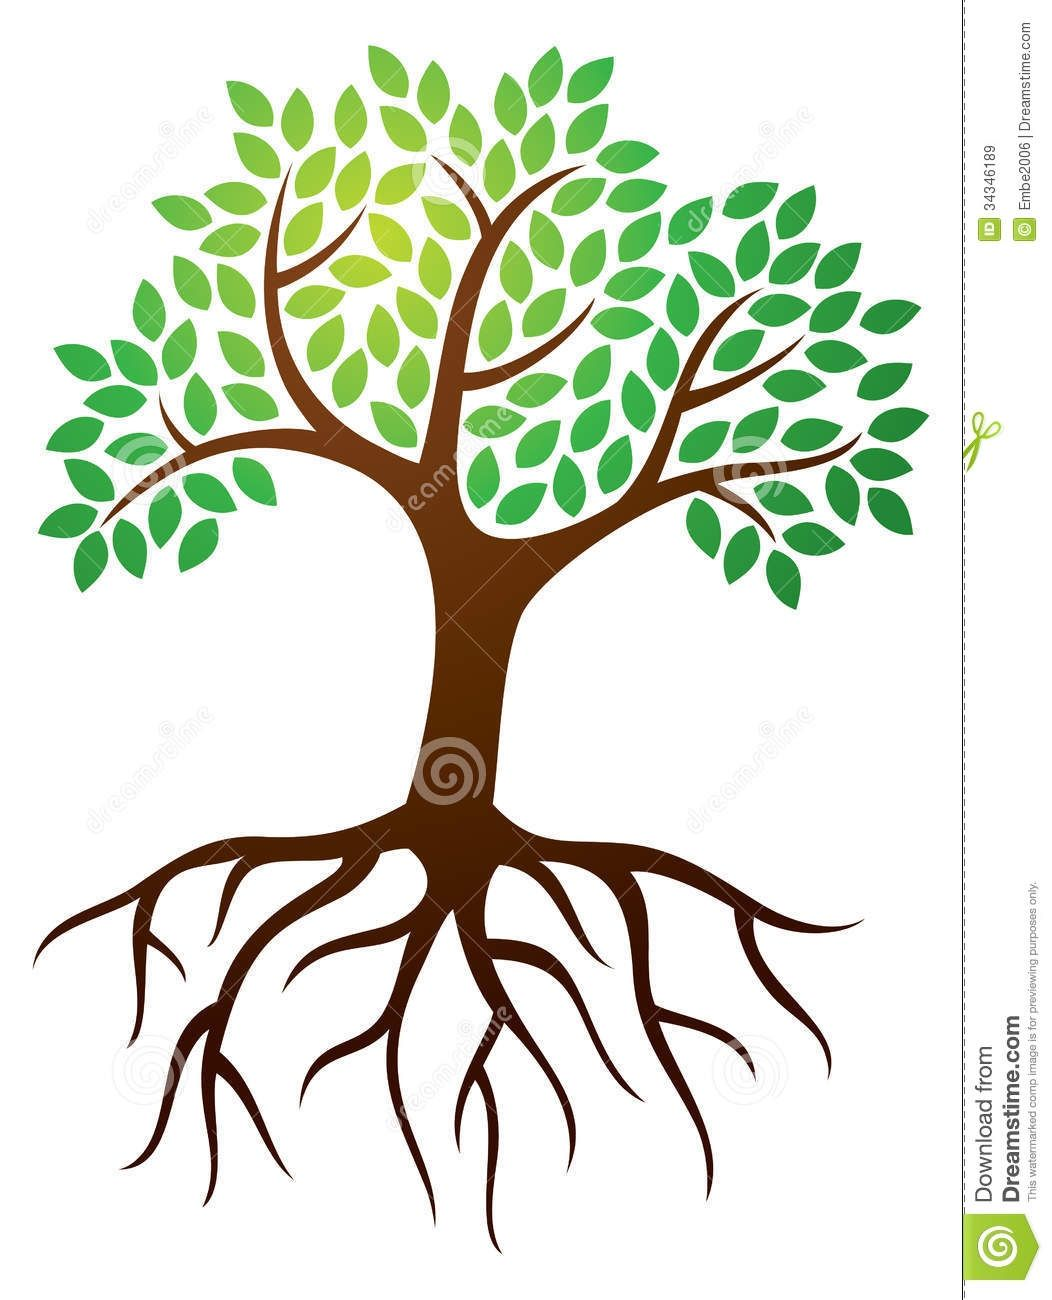 clipart of trees with roots clipartsgram com tree logos rh pinterest com family tree with roots clipart tree with roots silhouette clip art